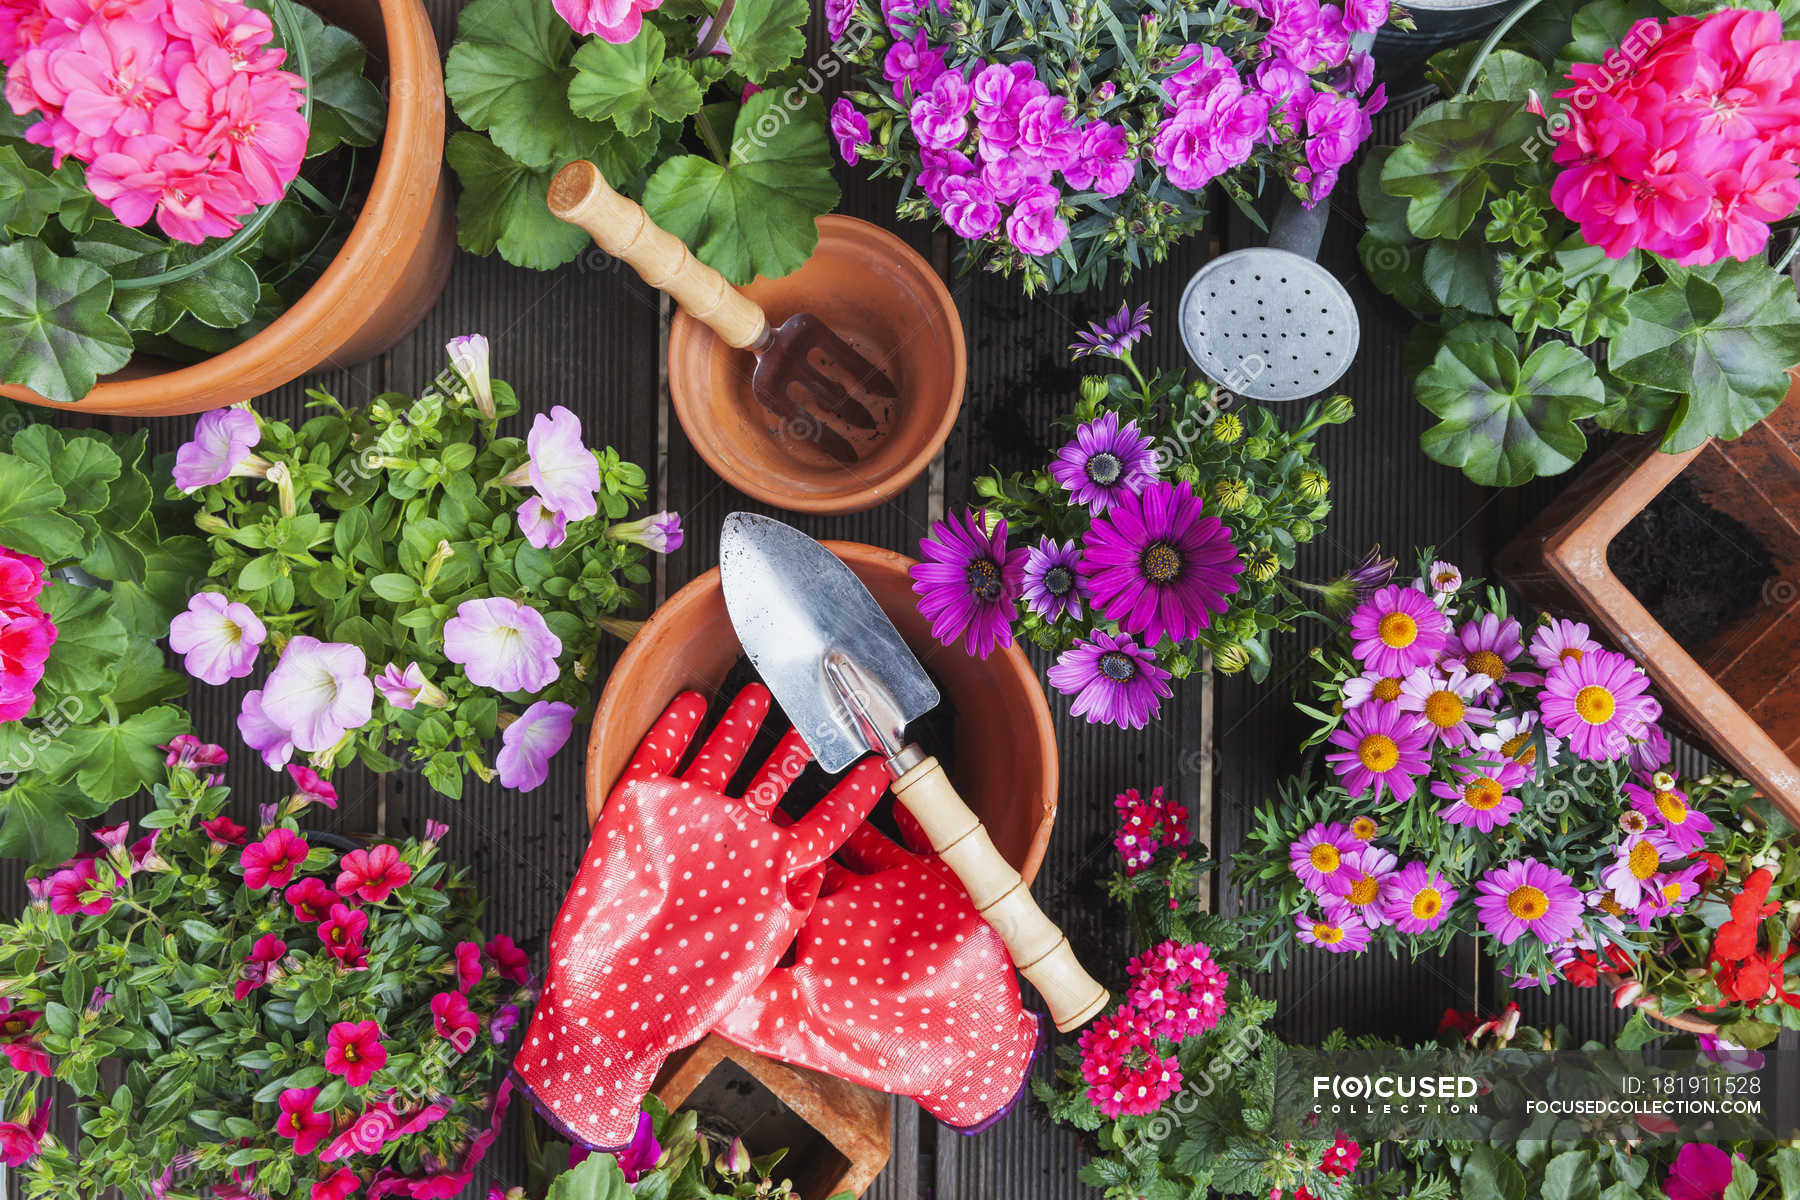 Gardening Different Spring And Summer Flowers Gardening Tools On